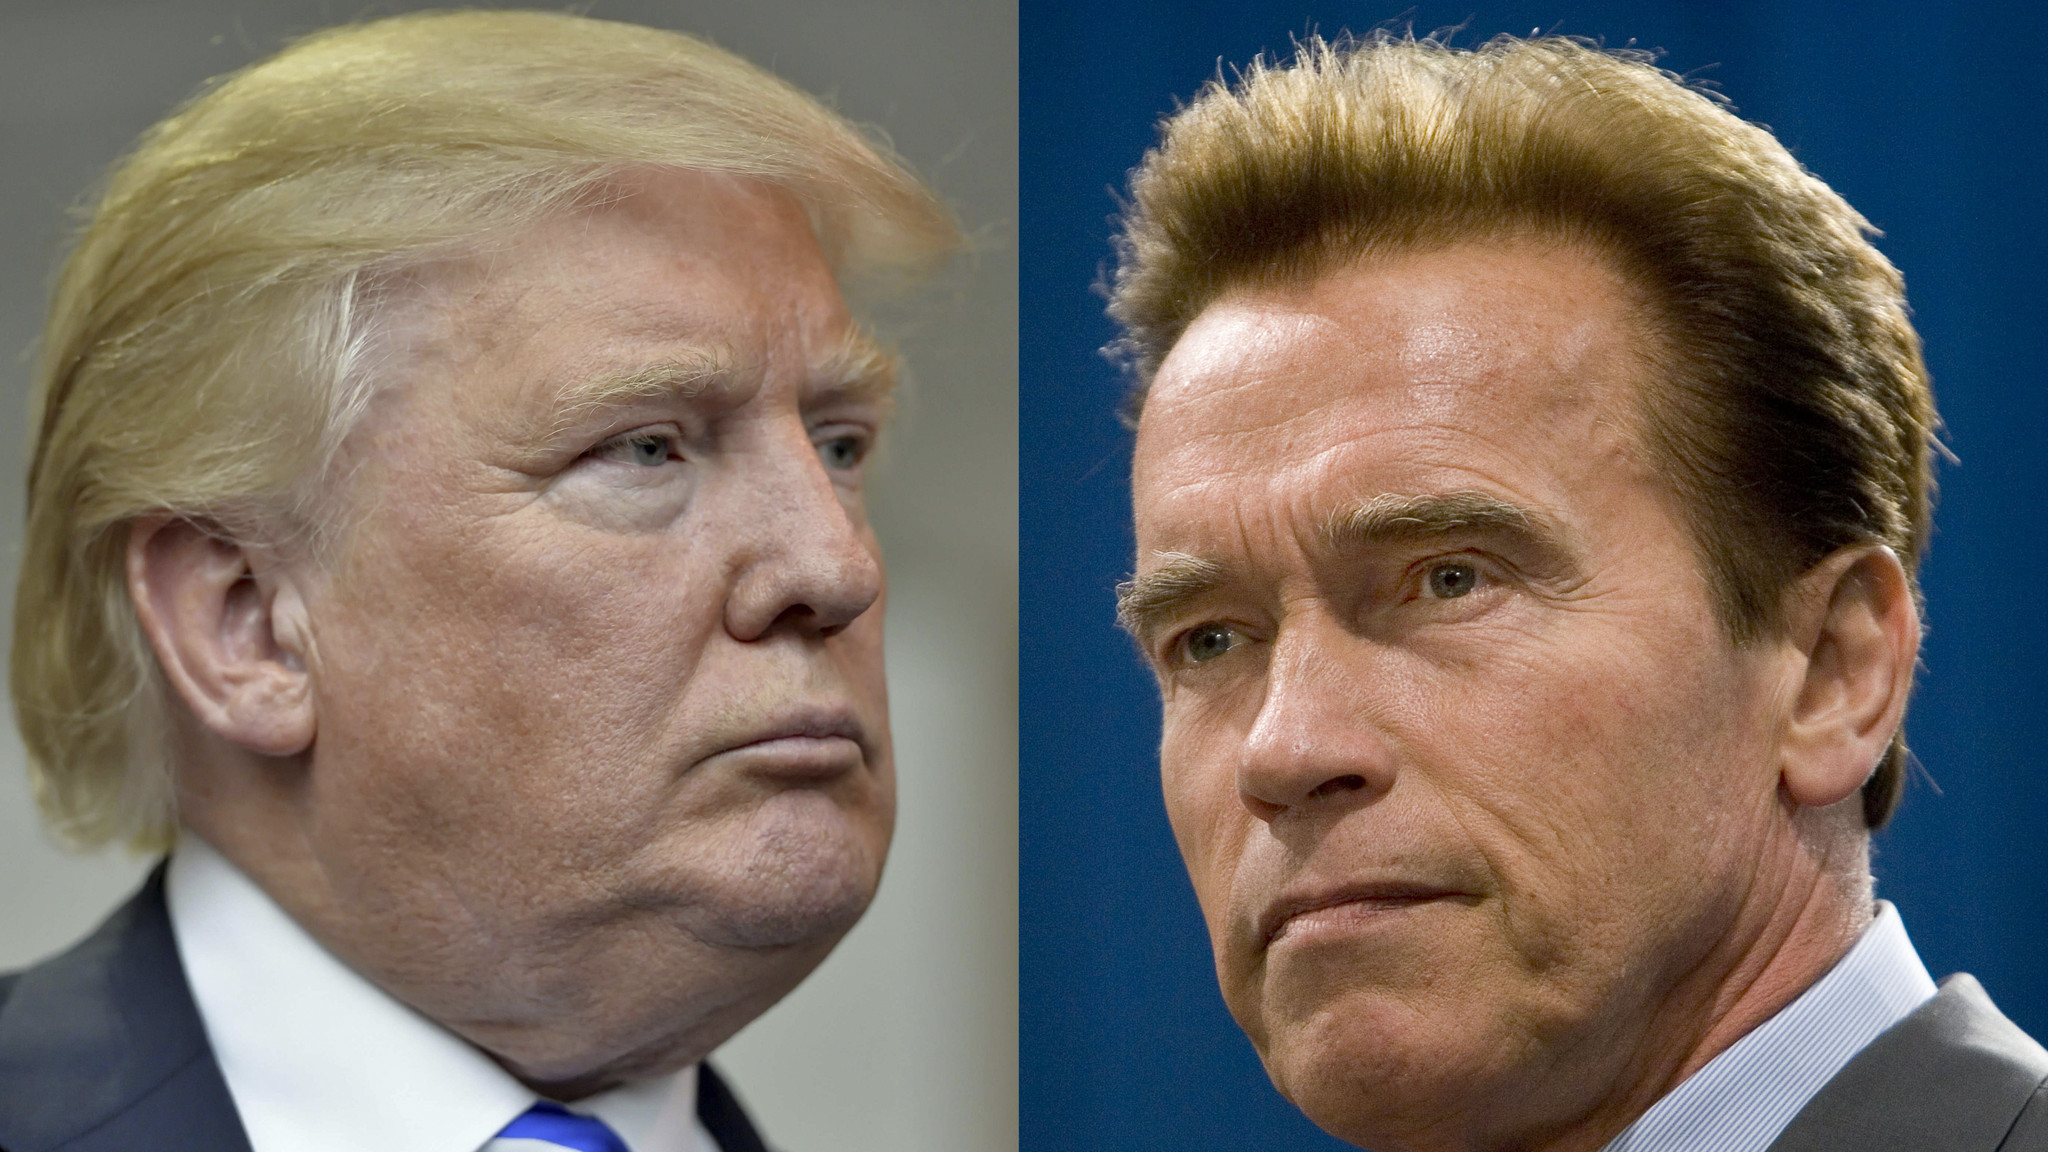 Arnold Schwarzenegger, right, has fired back at President Trump over his approval ratings. (Richard Shiro / Associated Press; Robert Durell / Los Angeles Times)